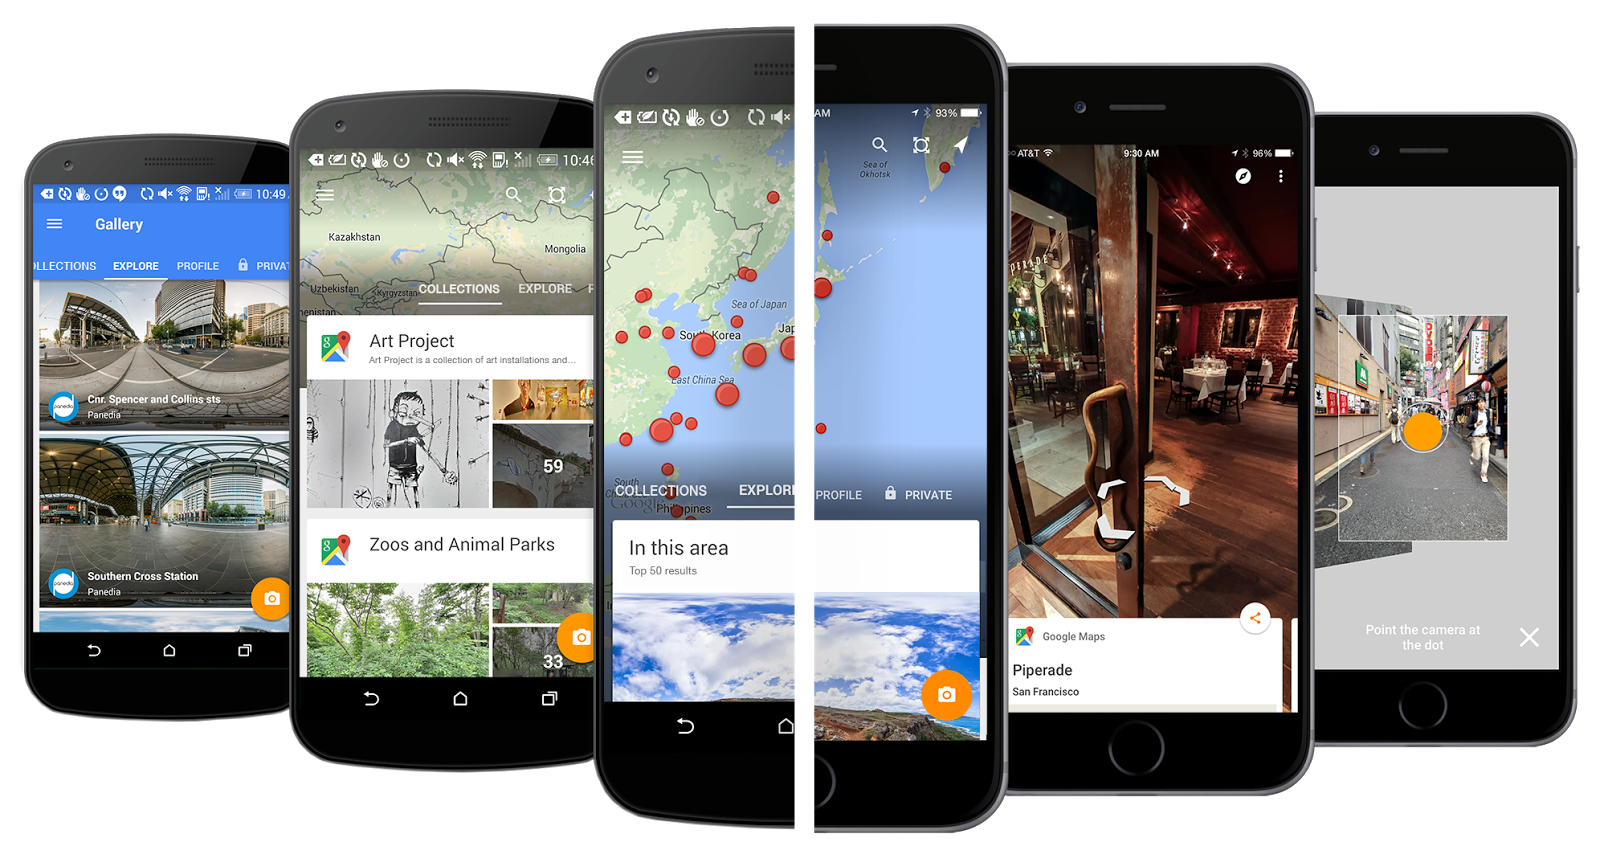 google-street-view-app-immerses-you-in-360-degree-photos-image-cultofandroidcomwp-contentuploads201509SVapp-1-png